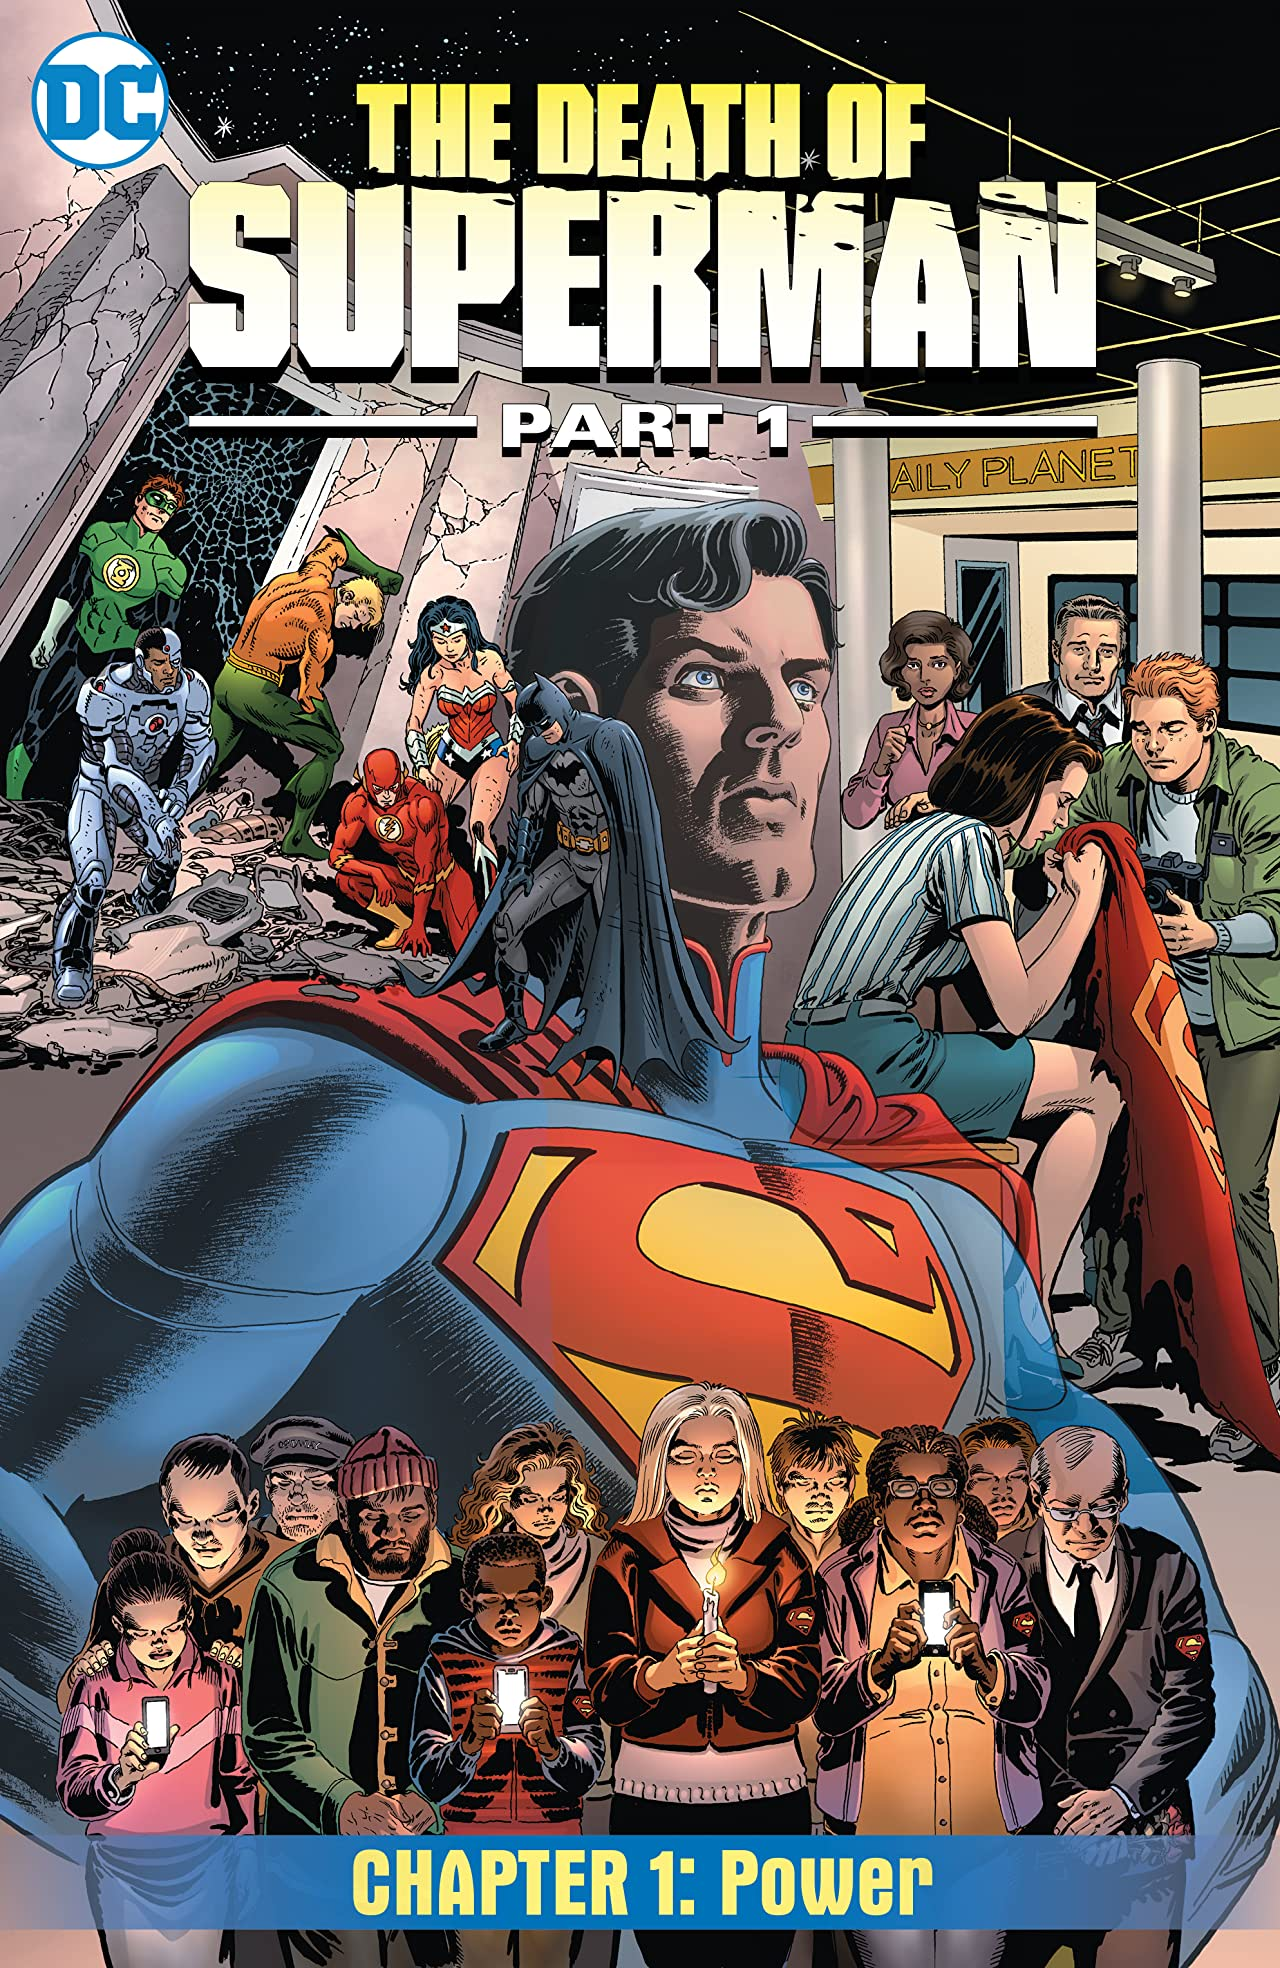 Death of Superman, Part 1 (2018-) #1